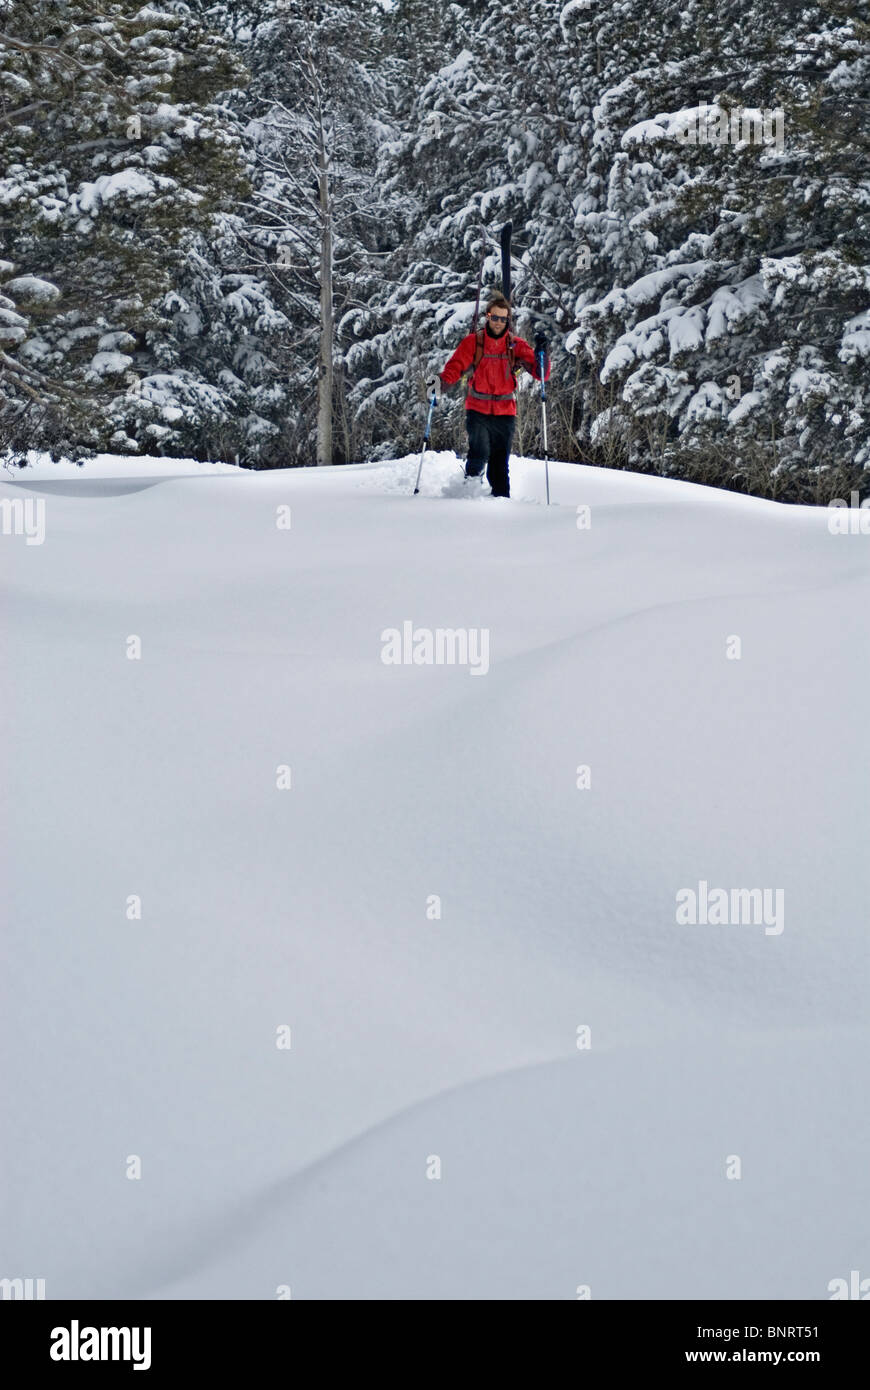 In search of fresh tracks, a young man hikes through knee-deep snow after a night of snowfall, in Lake Tahoe, Nevada. - Stock Image